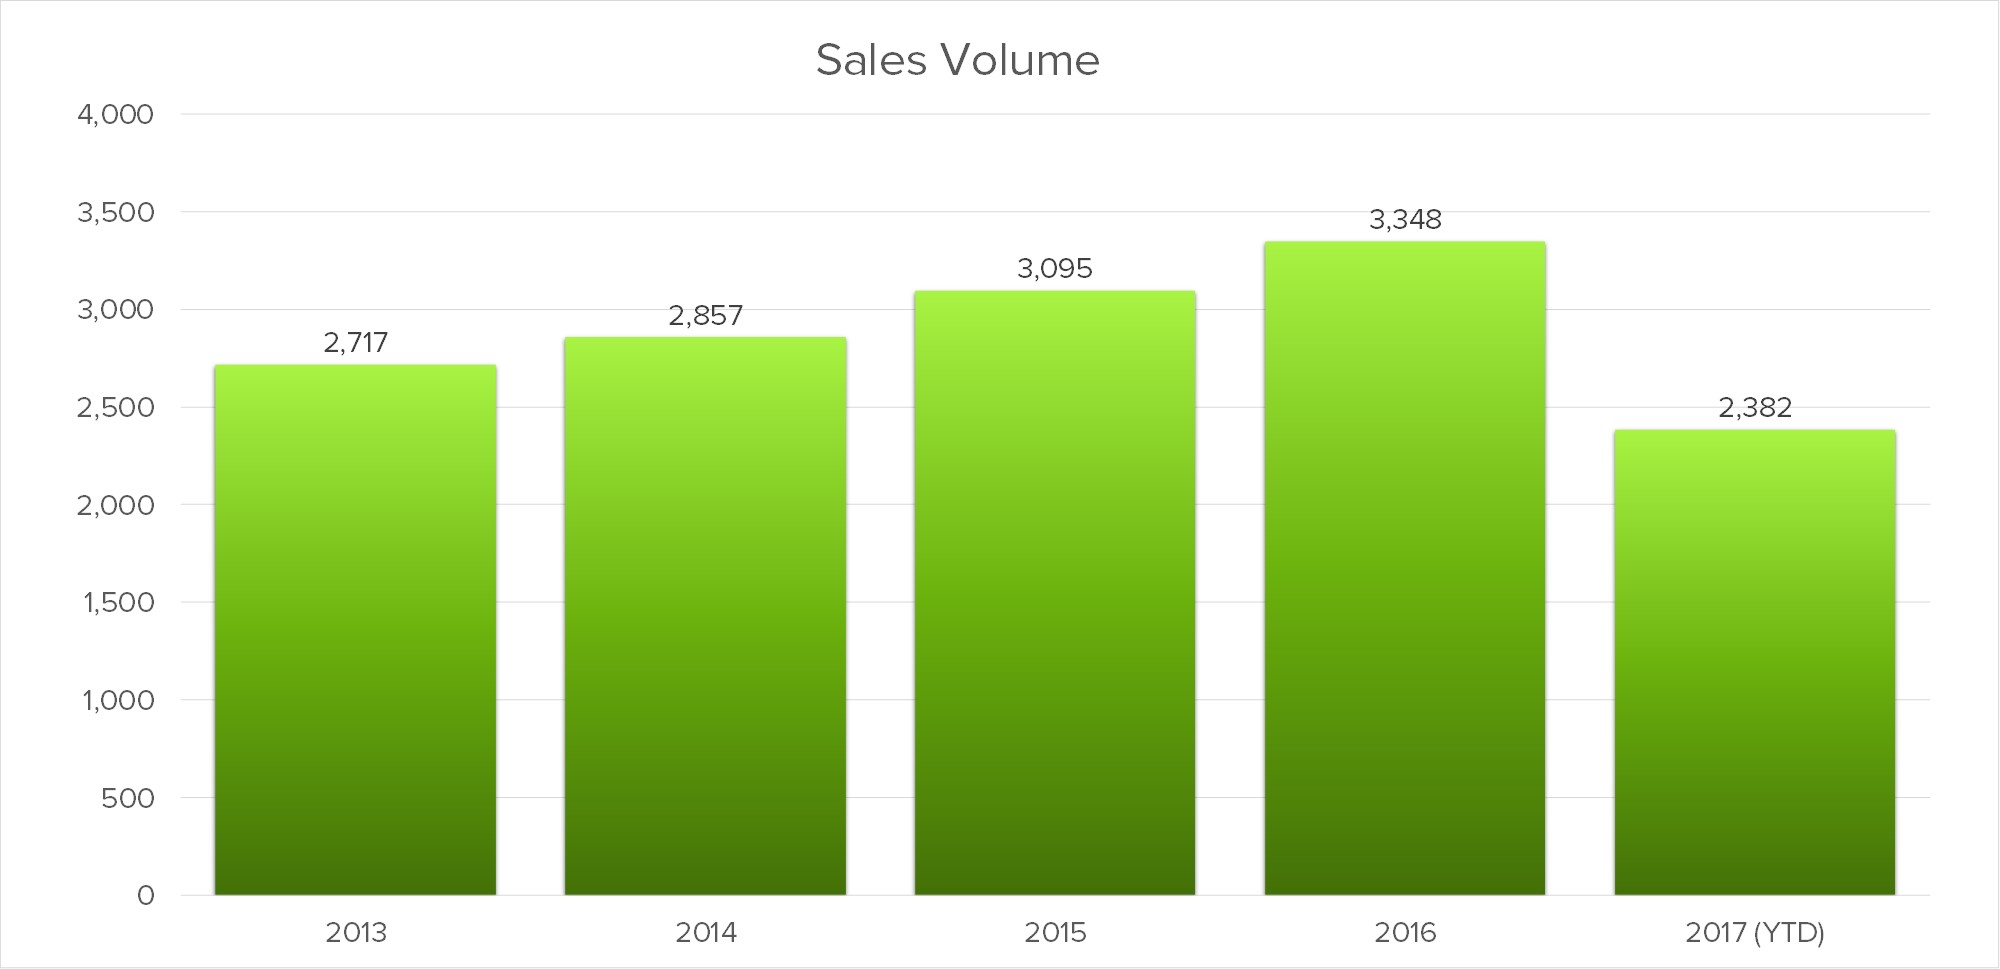 oakville-sales-volumes.jpg